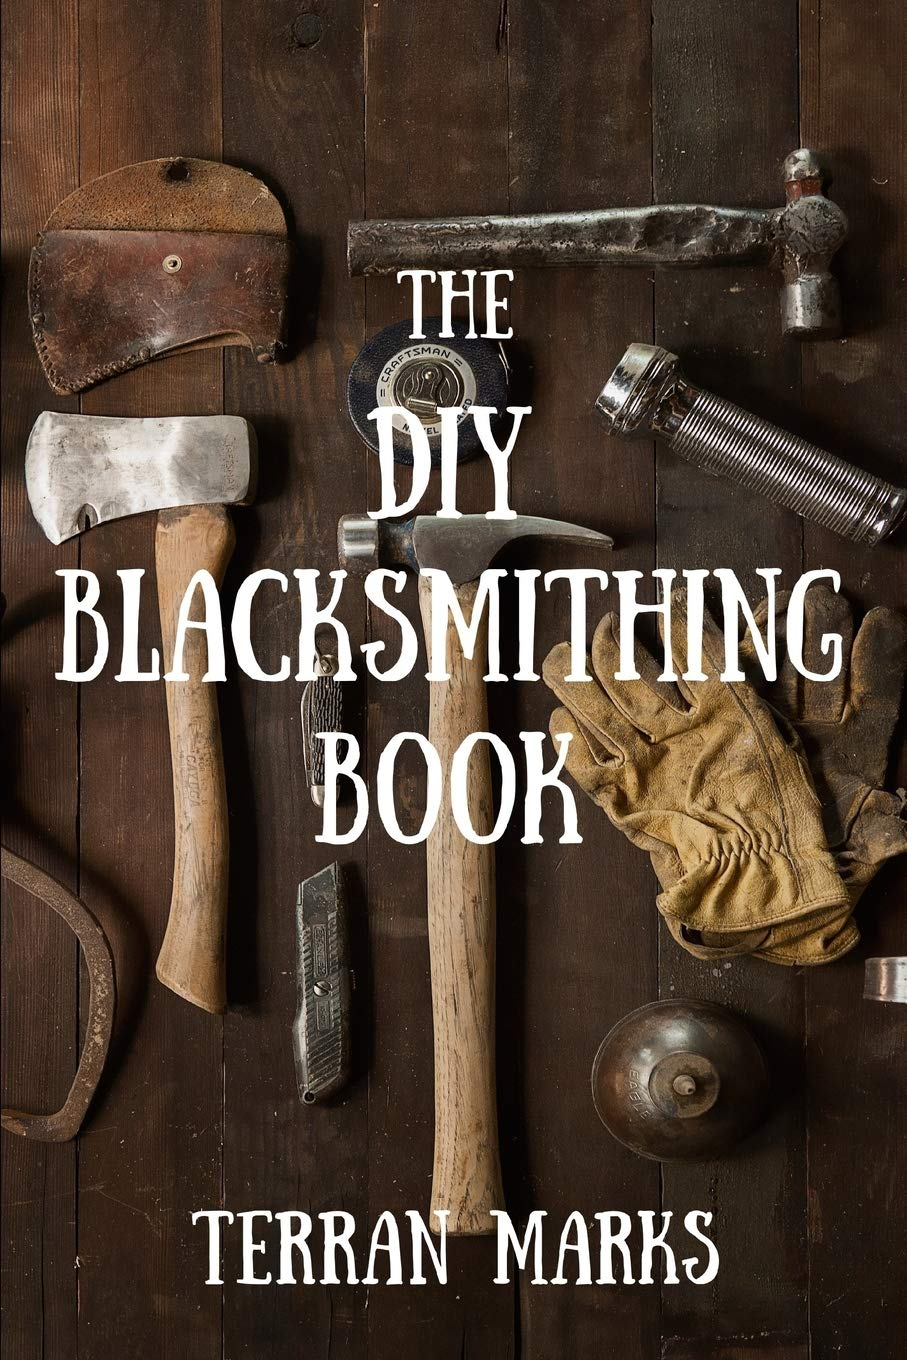 The Diy Blacksmithing Book Blacksmith Books Volume 1 Marks Terran 9781514338162 Amazon Com Books